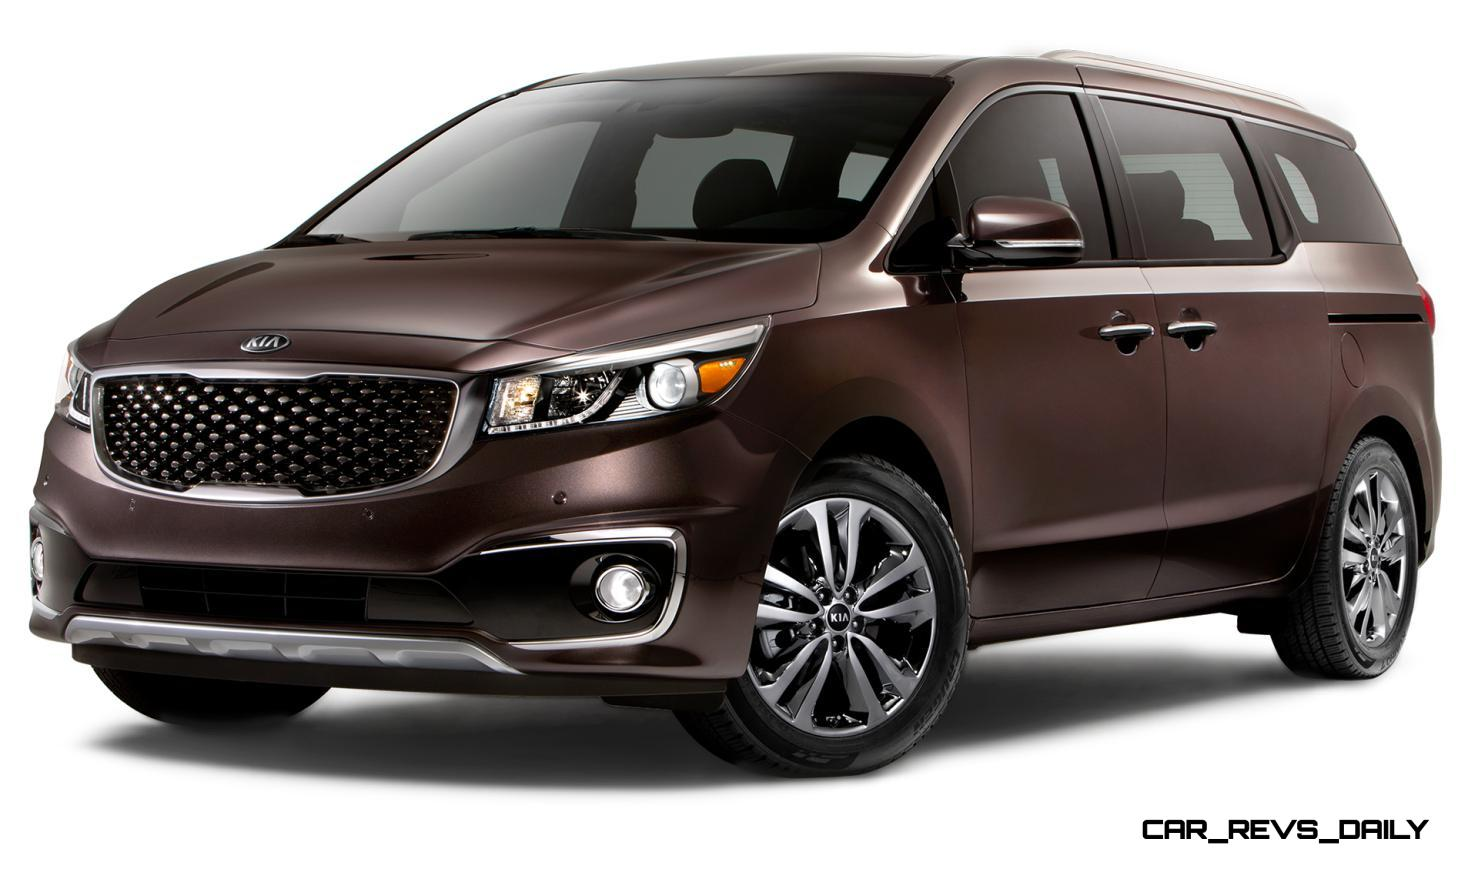 2015 Kia Sedona Be es Seriously petitive With Lux